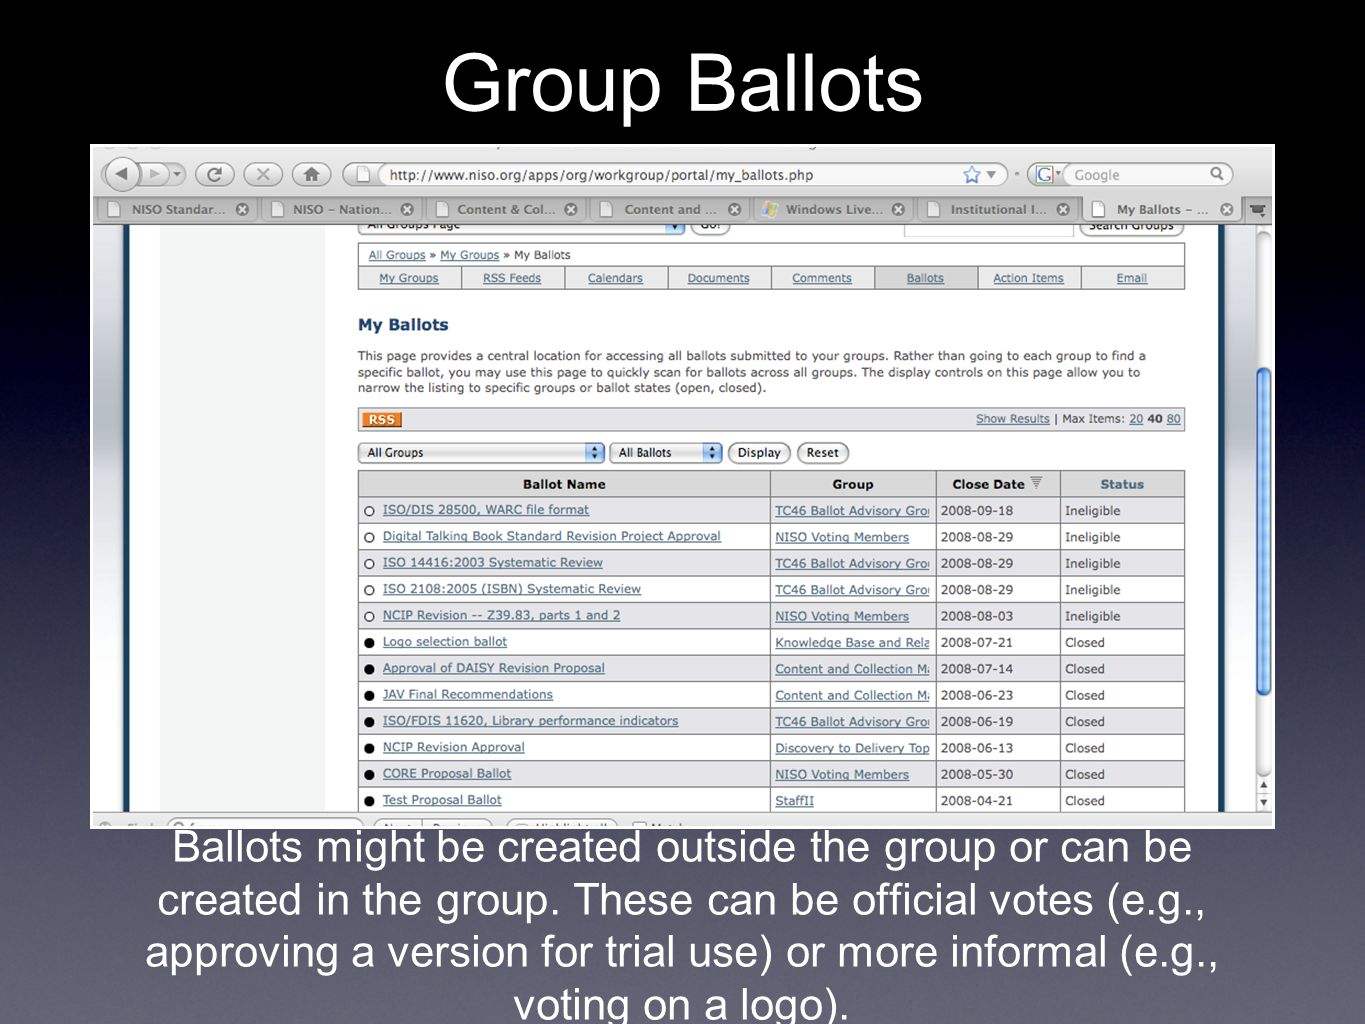 Ballots might be created outside the group or can be created in the group.